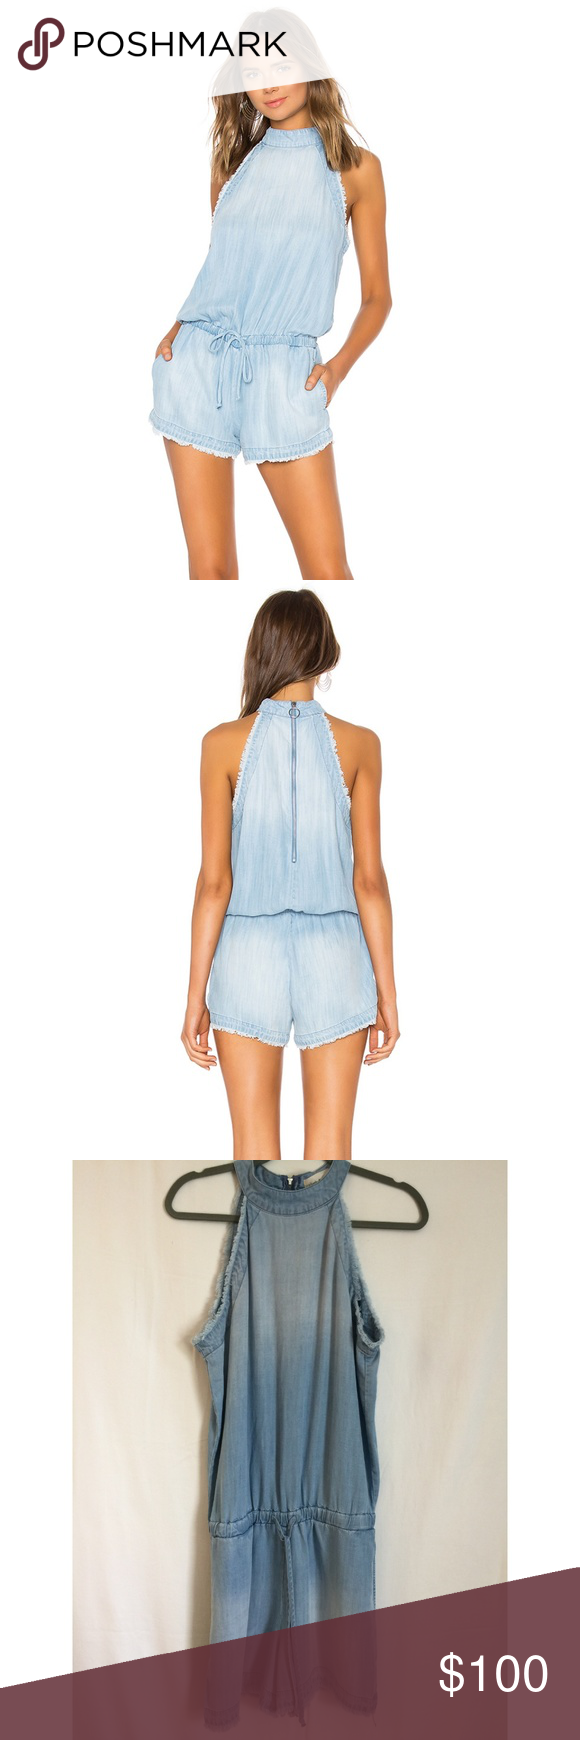 5129b4d47f4 Cloth  amp  Stone Blue Zip Back Frayed Trim Romper S M Anthropologie Cloth  Stone Blue Chambray